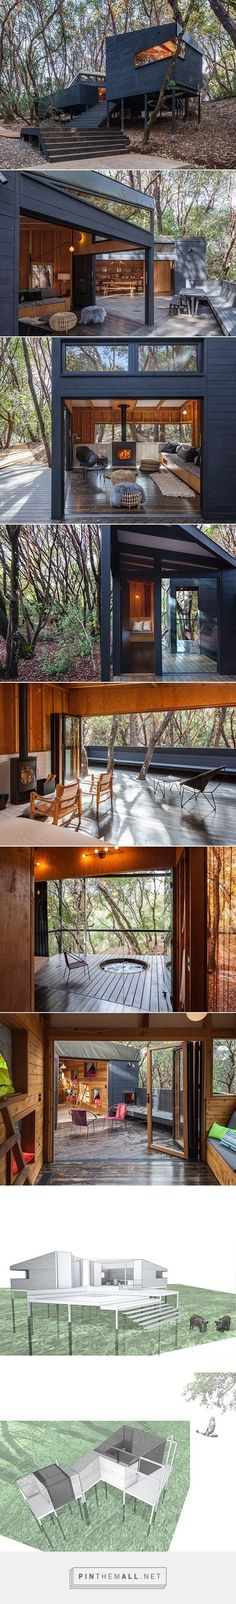 Forest House - envelopeA+D 3rd Image - Makes me feel relaxed, combination of fire and seating plus rug